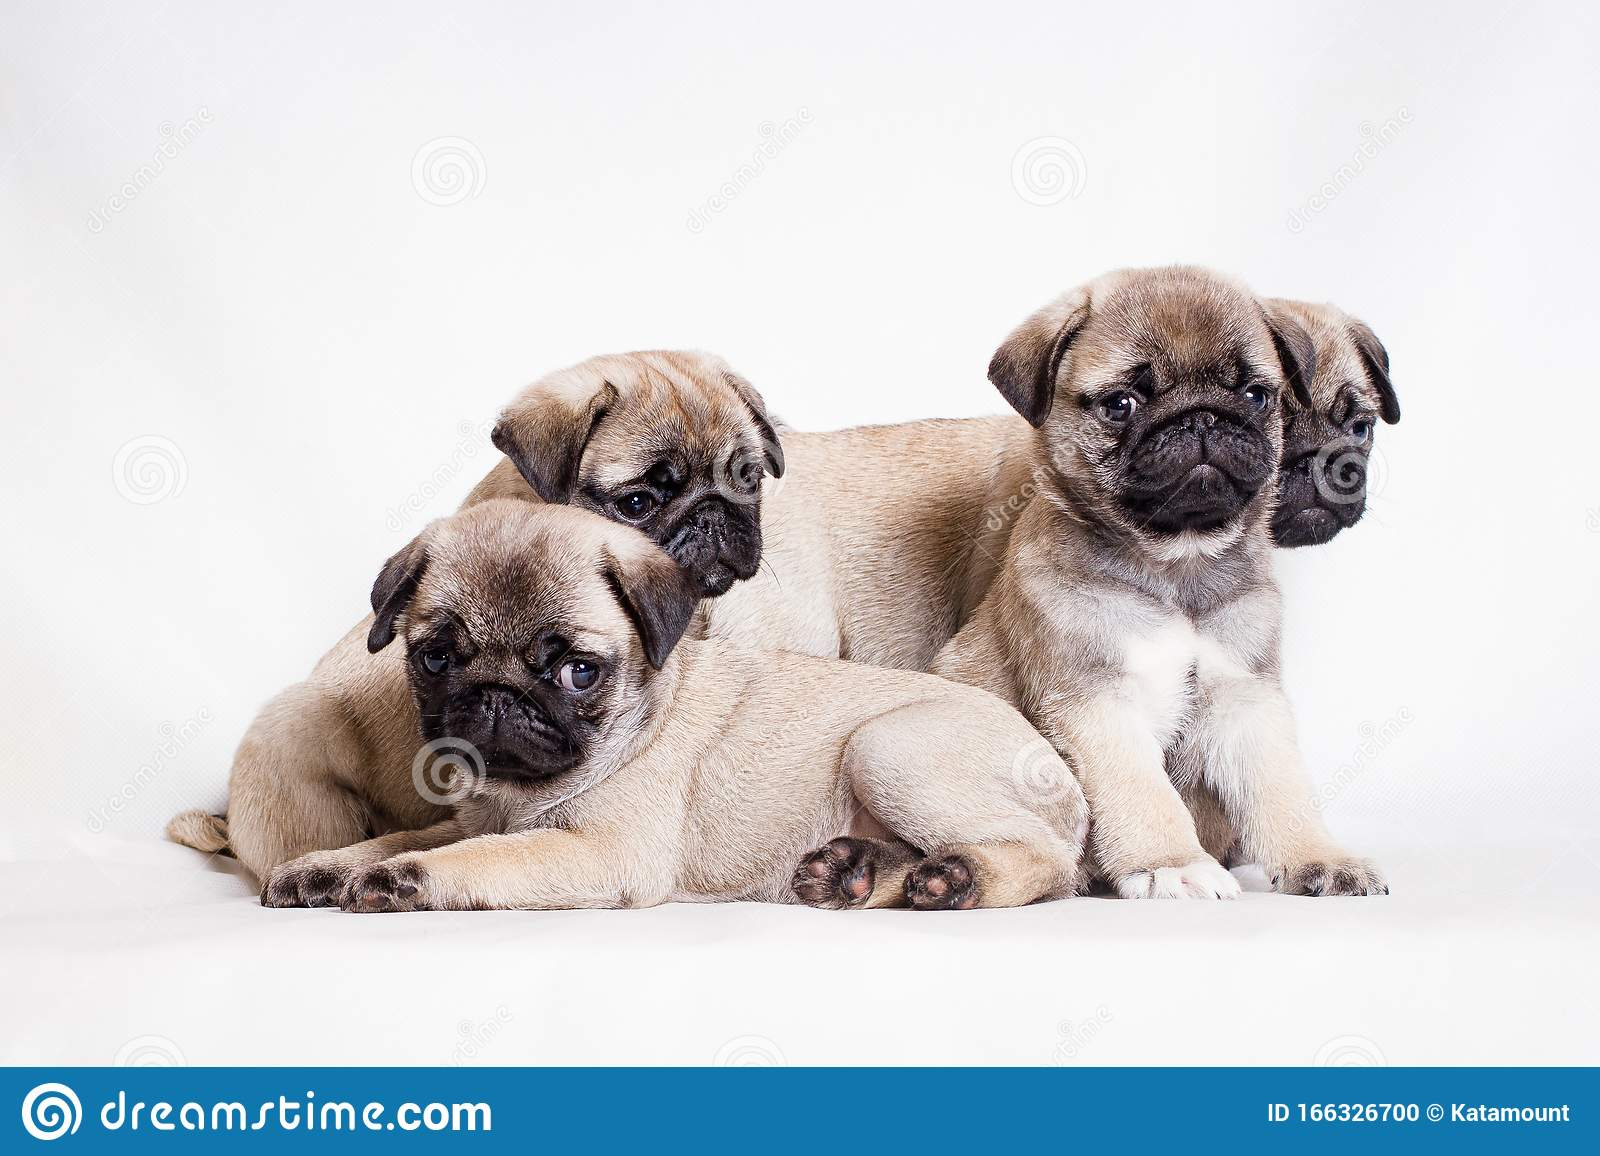 Four Little Fawn Pug Puppies Sit On A White Background Stock Photo Image Of Friend Flattened 166326700